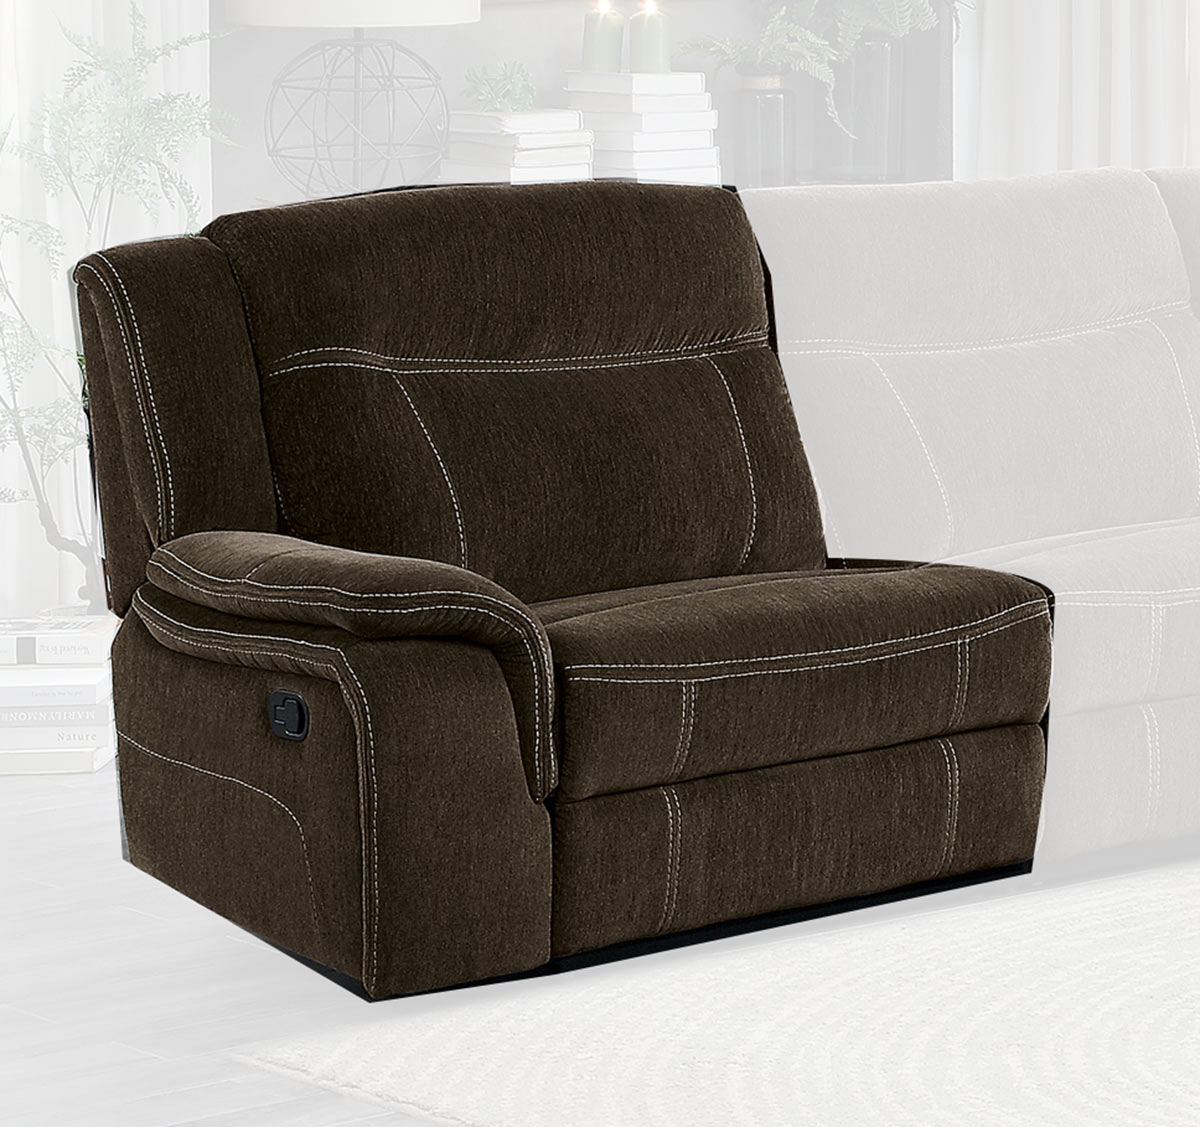 Homelegance Annabelle Left Side Reclining Chair - Brown